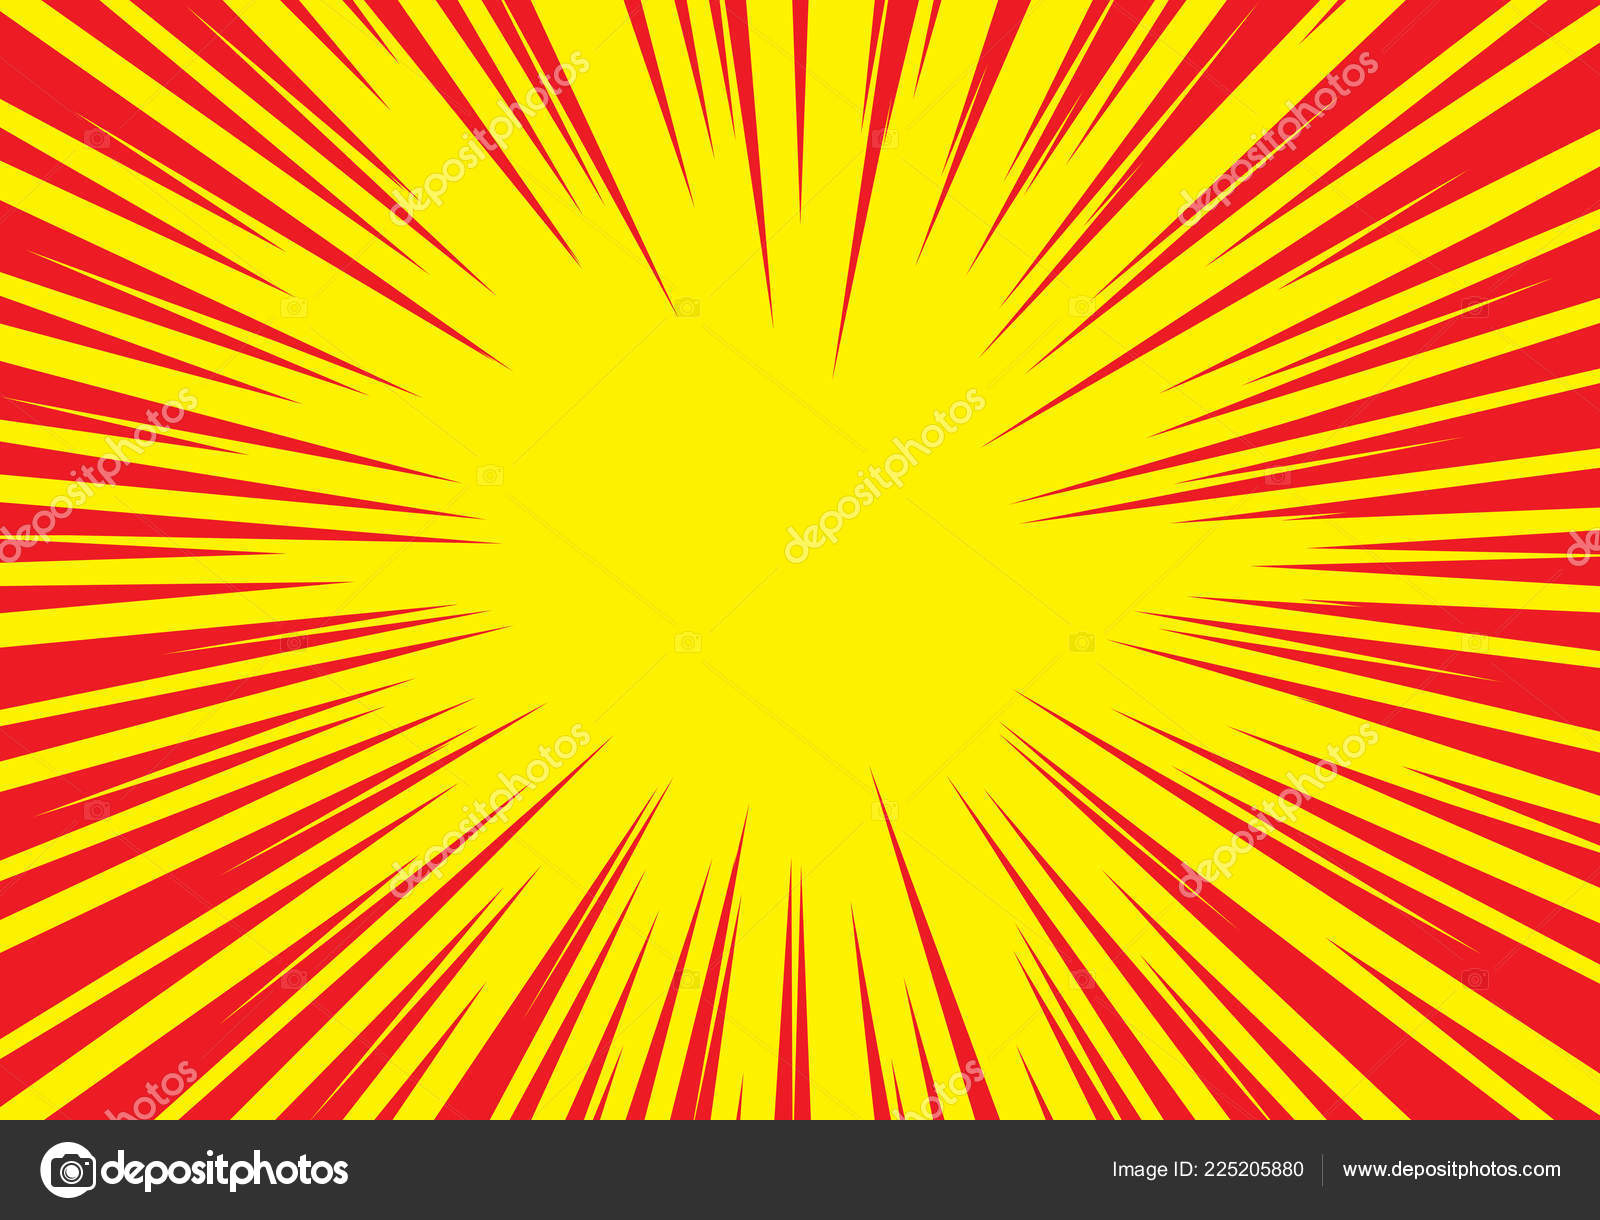 ic zoom lines Radial Zoom Speed Line Red Yellow ic